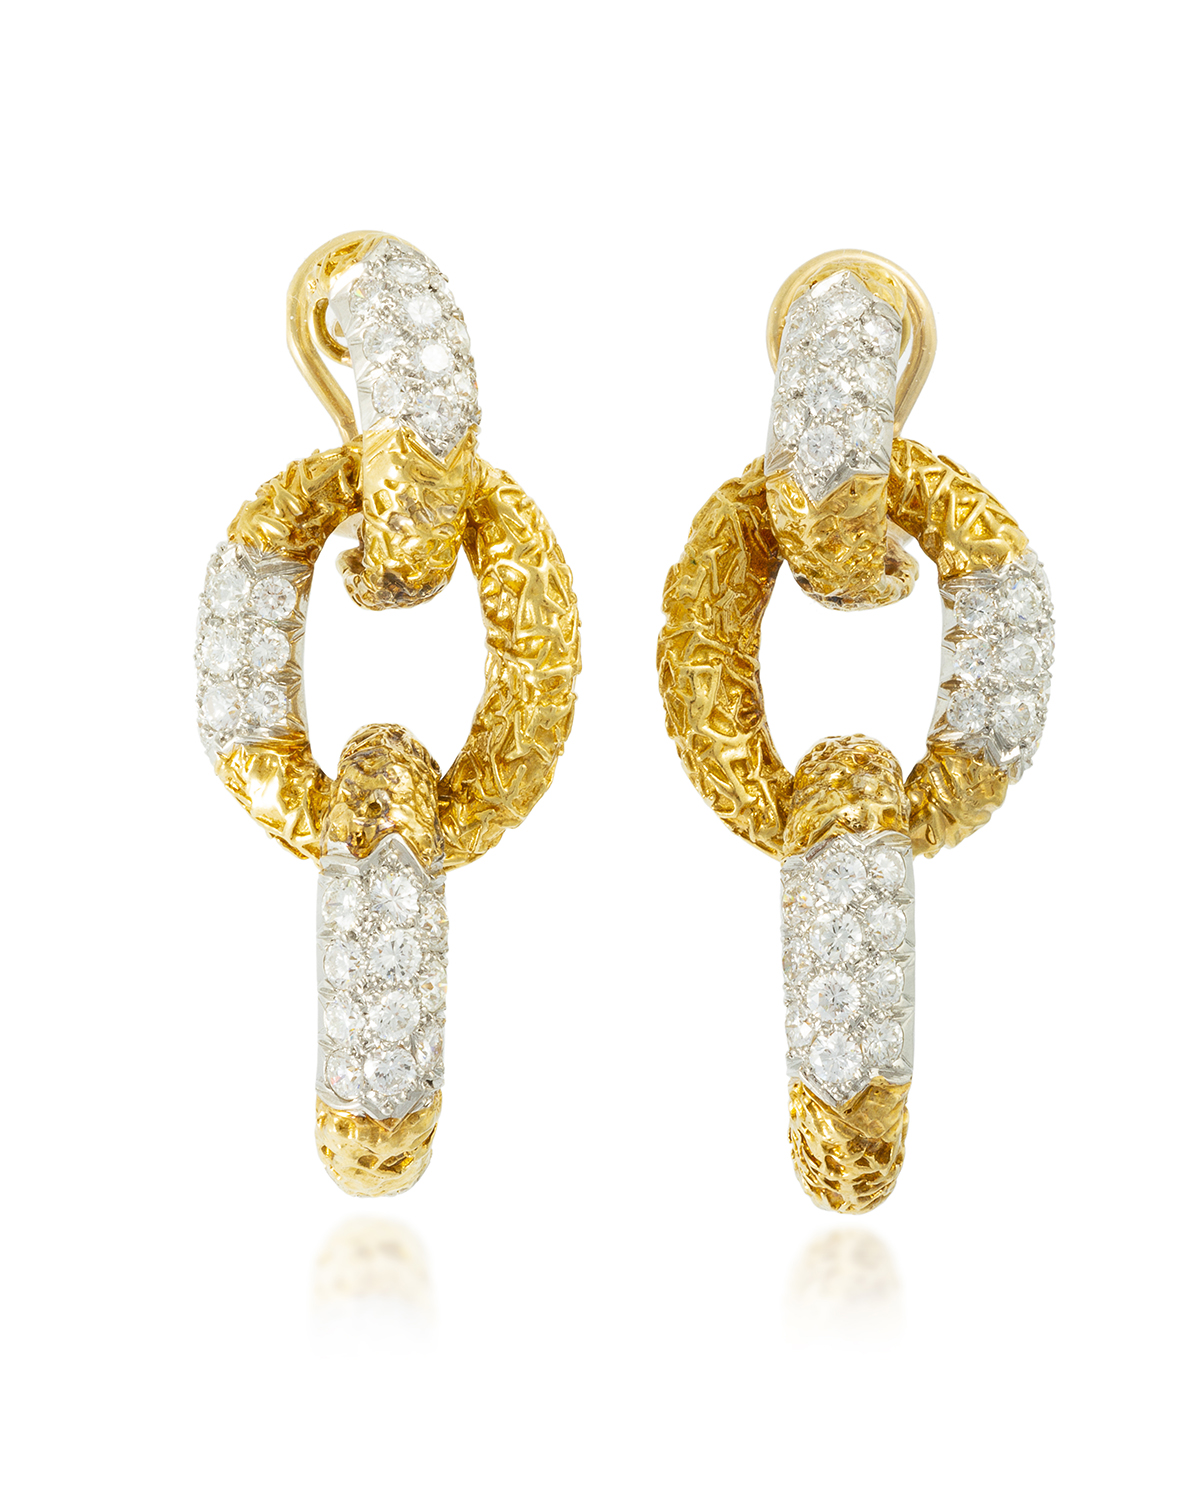 A pair of diamond and gold ear pendants, Van Cleef & Arpels